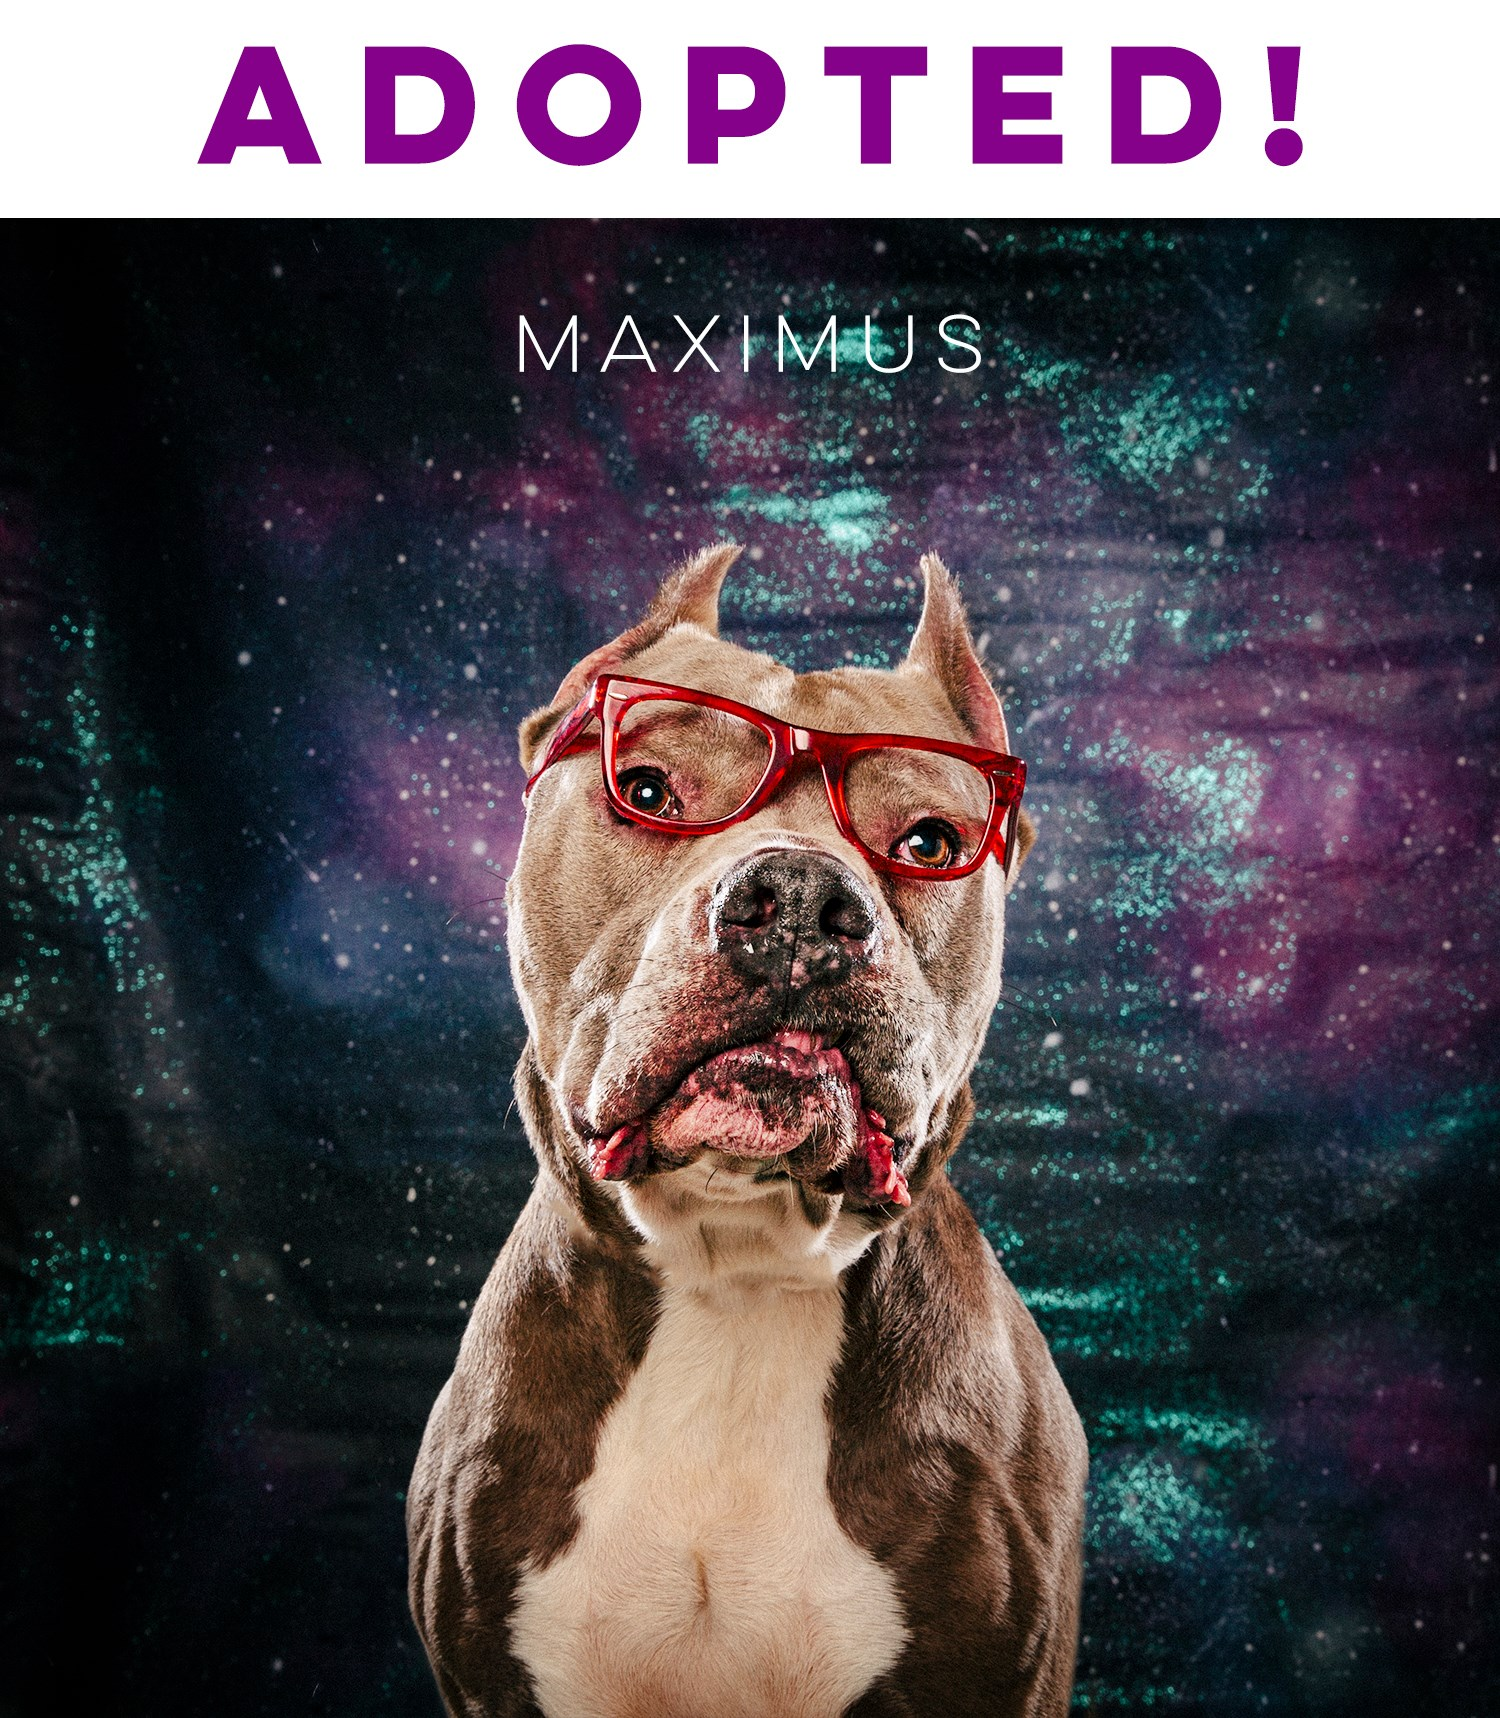 Arouty-Adopted-Maximus-Red-Glasses